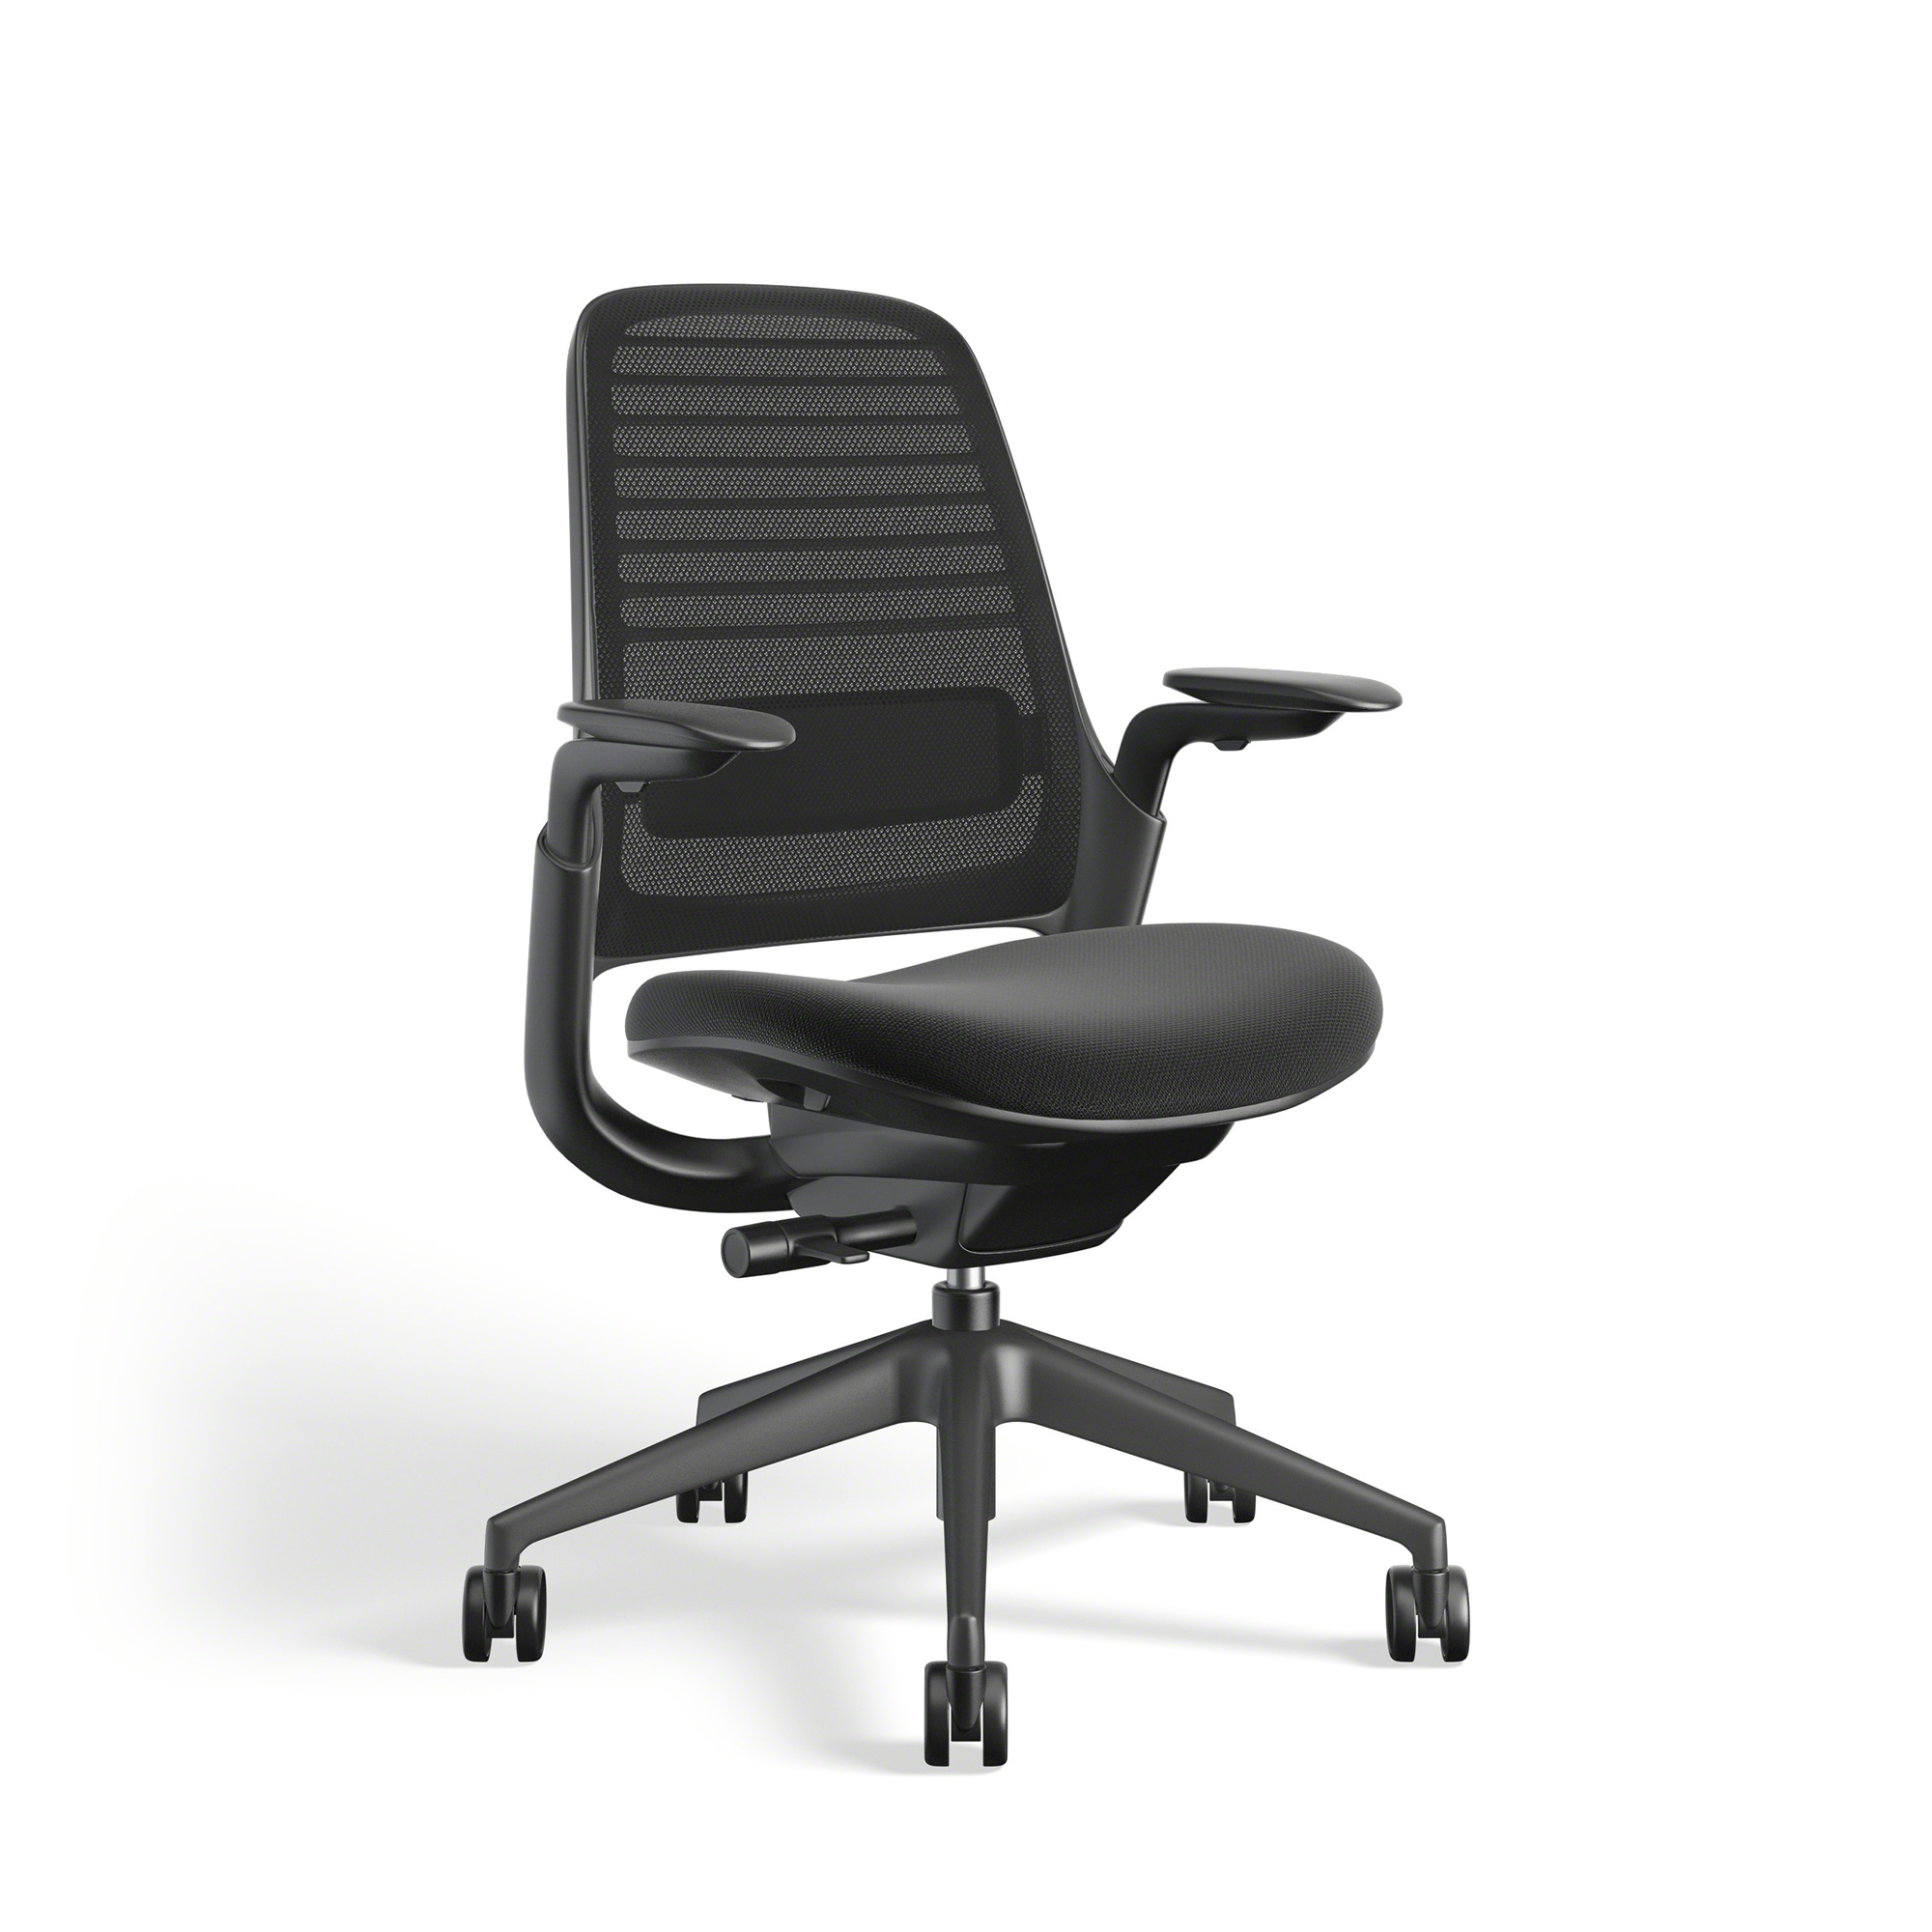 Fit Chair Steelcase Series 1 Chair Office Furniture Poppin